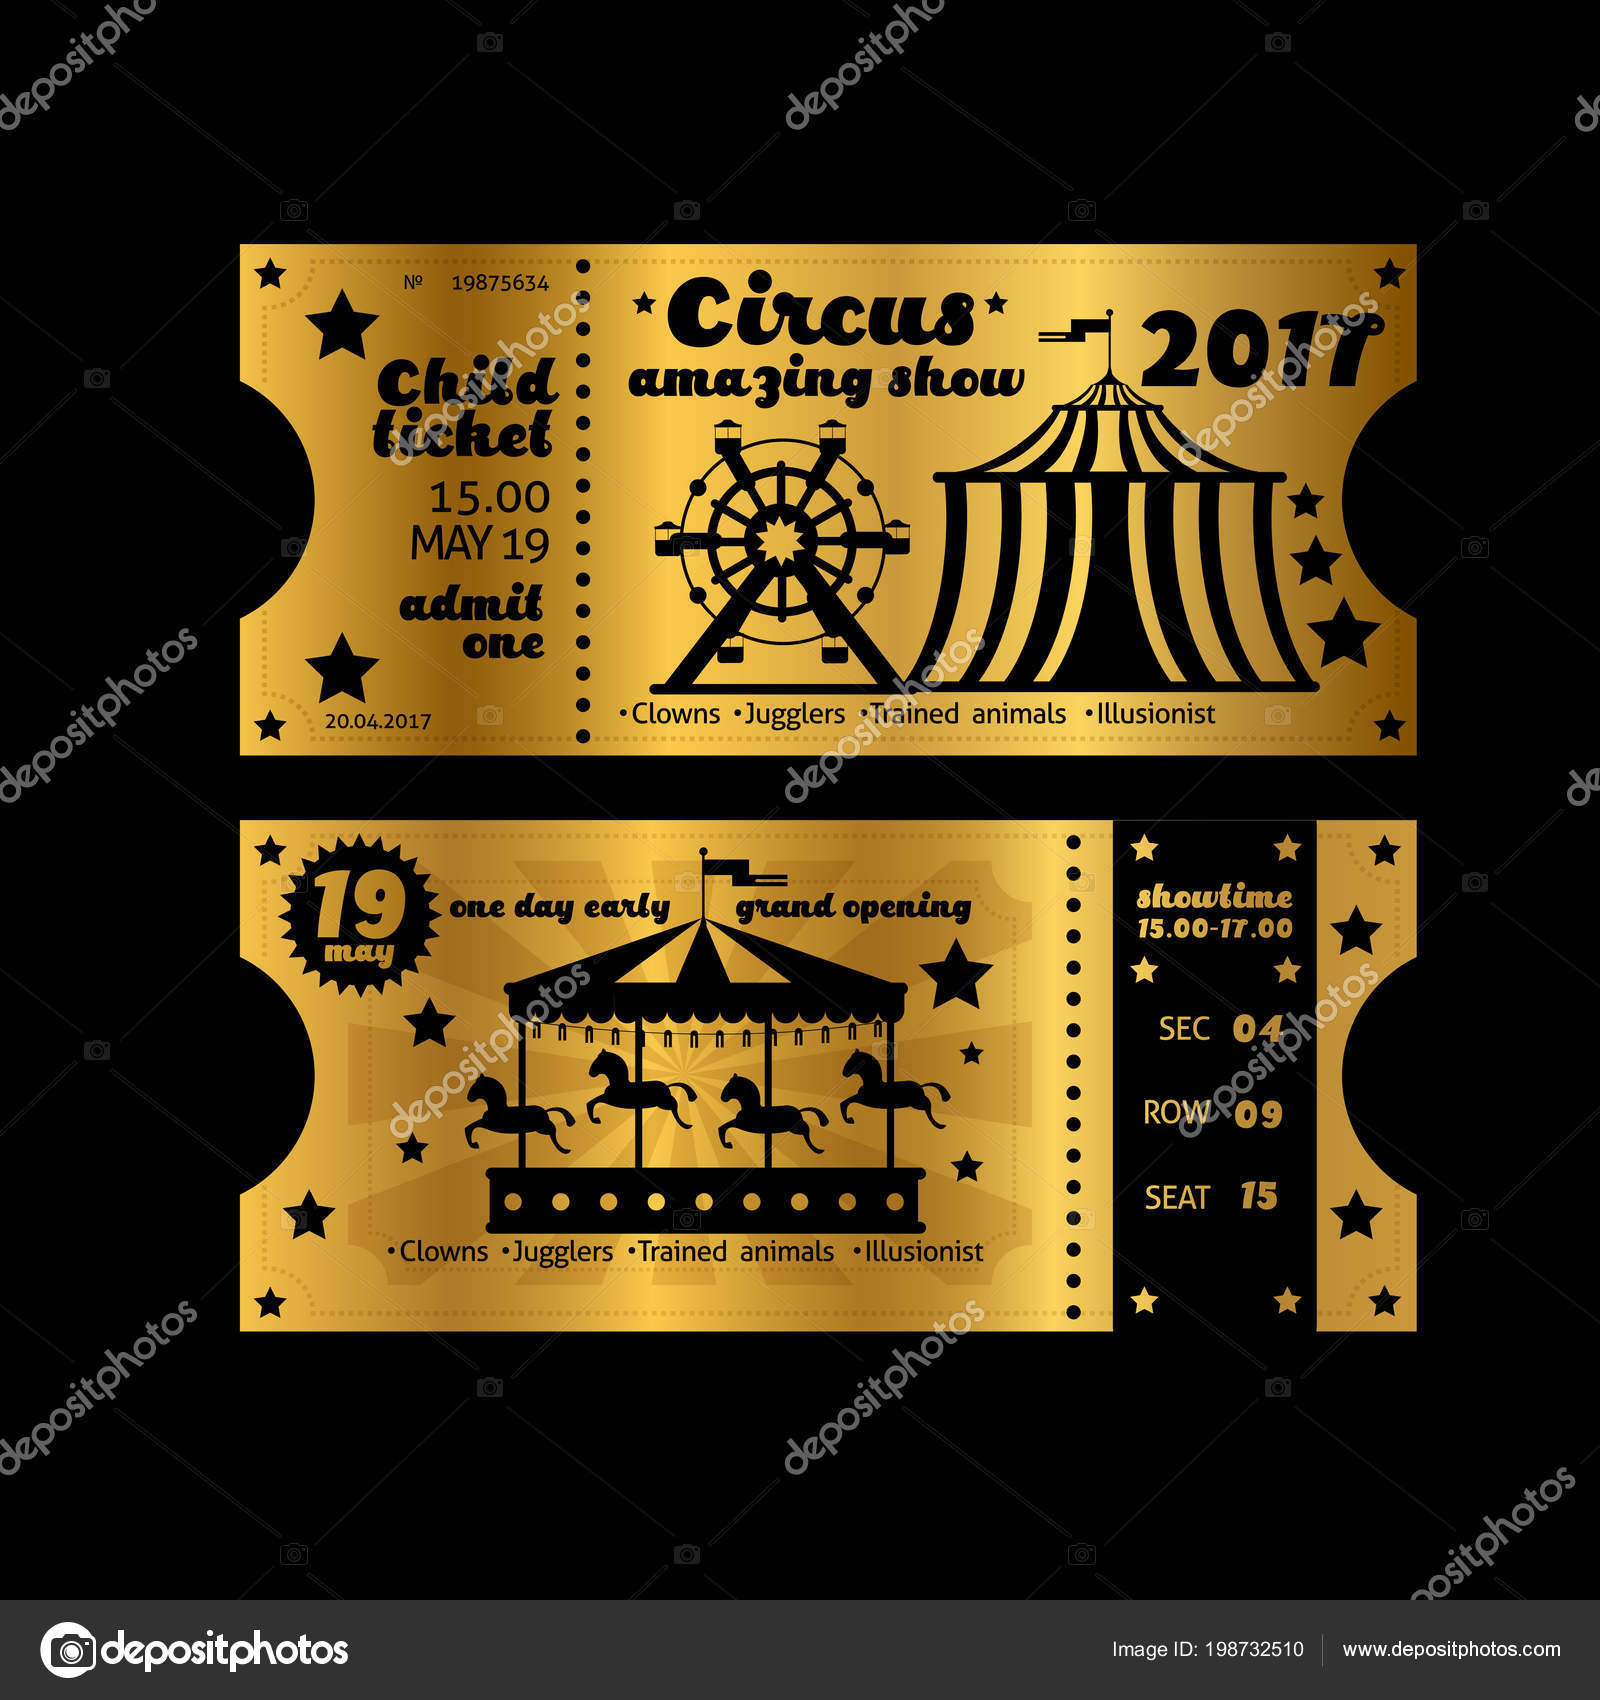 Vintage Party Invitation. Retro Circus Carnival Ticket Template Vector Golden Tickets Isolated On Black Background